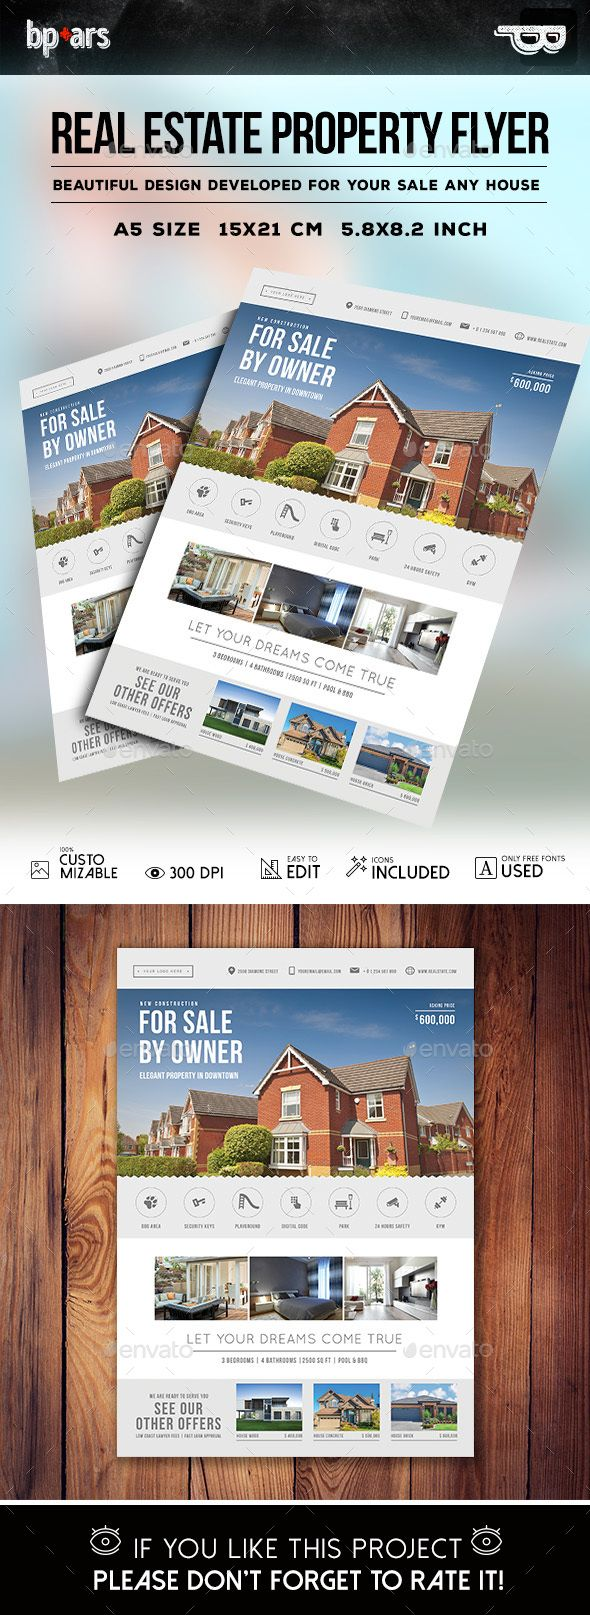 Real State Property Flyer Template PSD #design Download: http://graphicriver.net/item/real-state-property-flyer/14227836?ref=ksioks